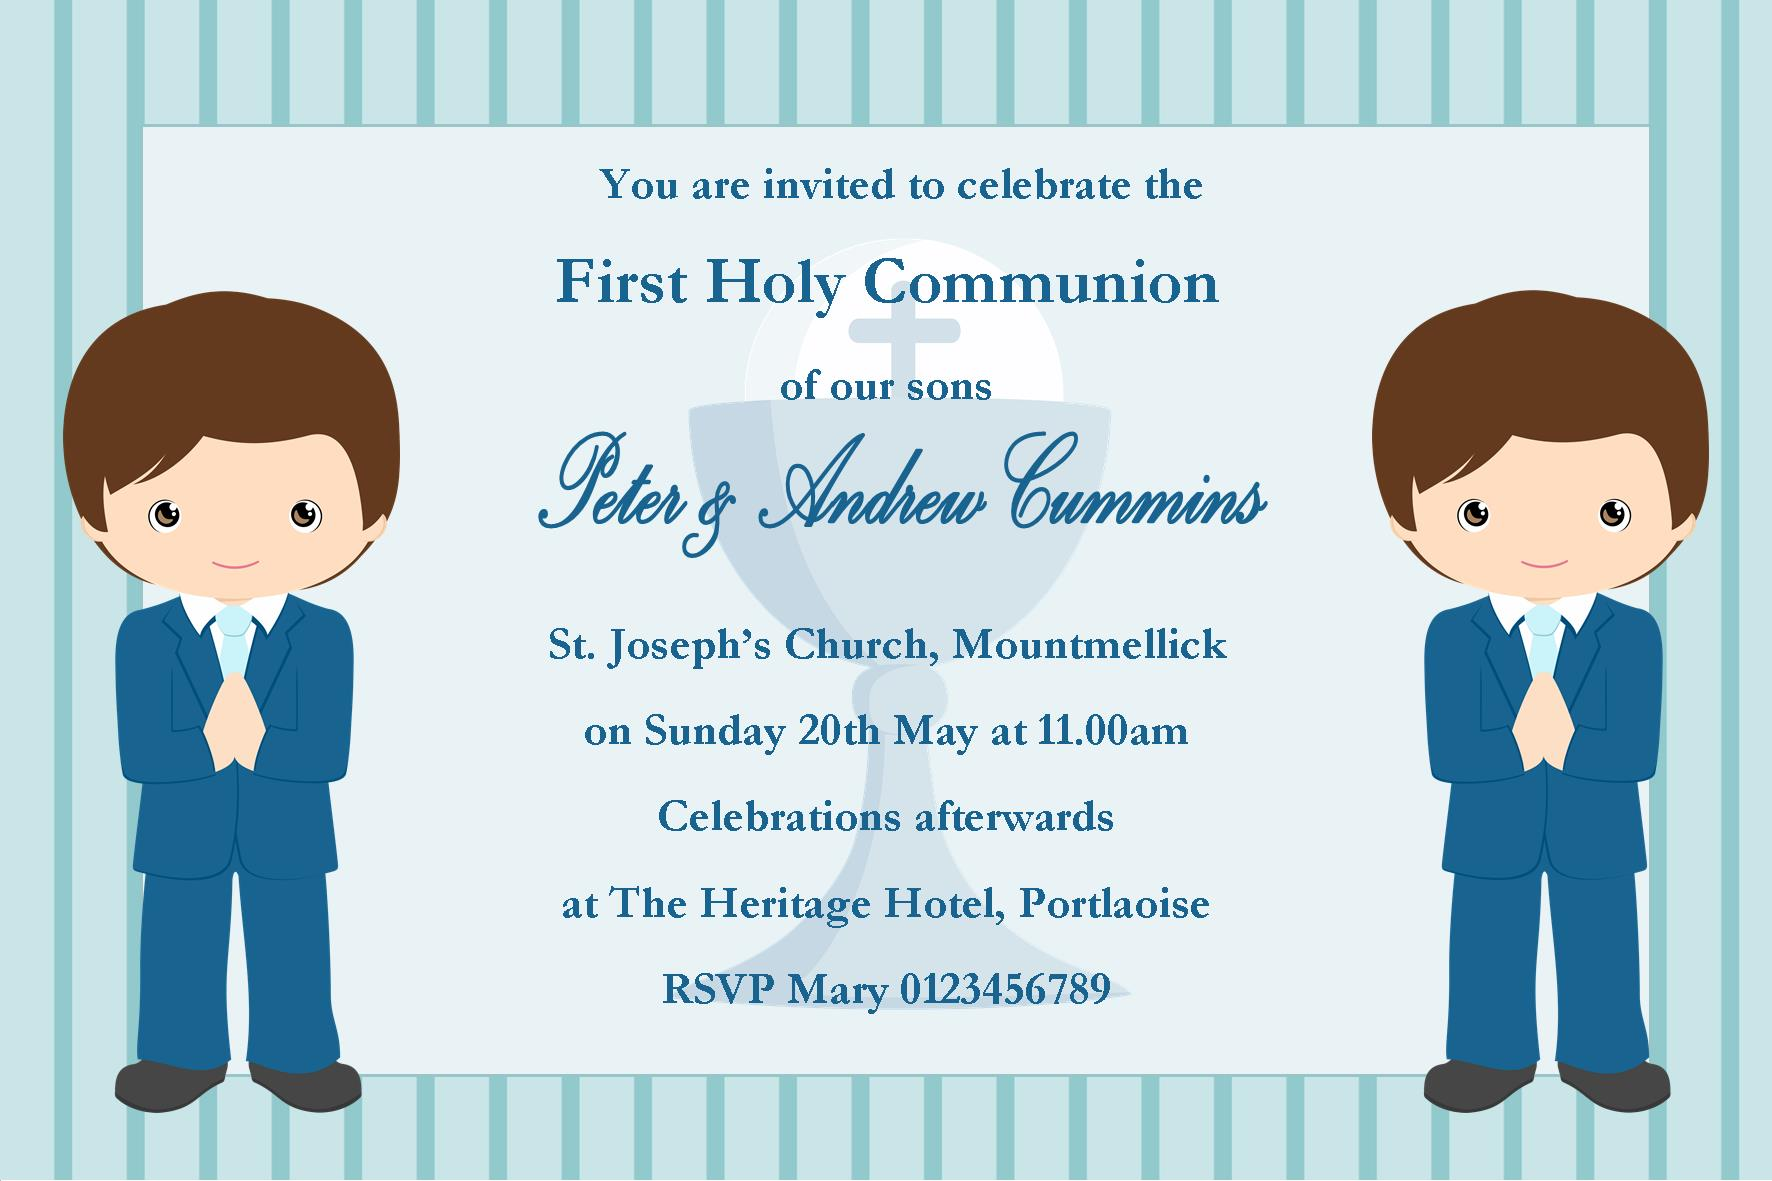 first communion invitations for boys | Wedding invitation cards